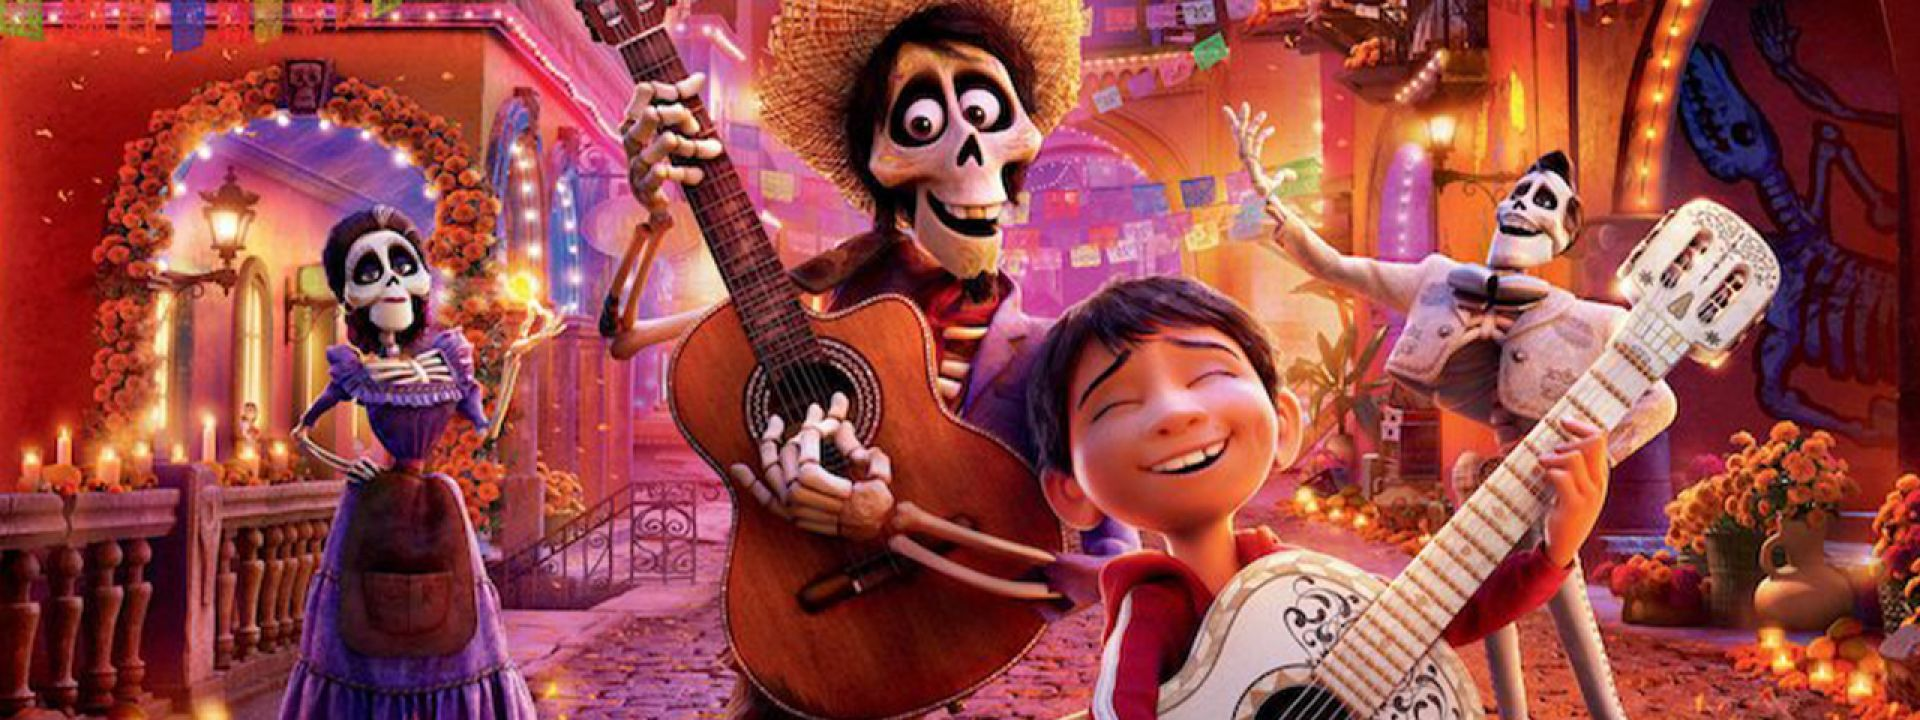 Park Your Cinema Kids: Coco (2017) - Εικόνα